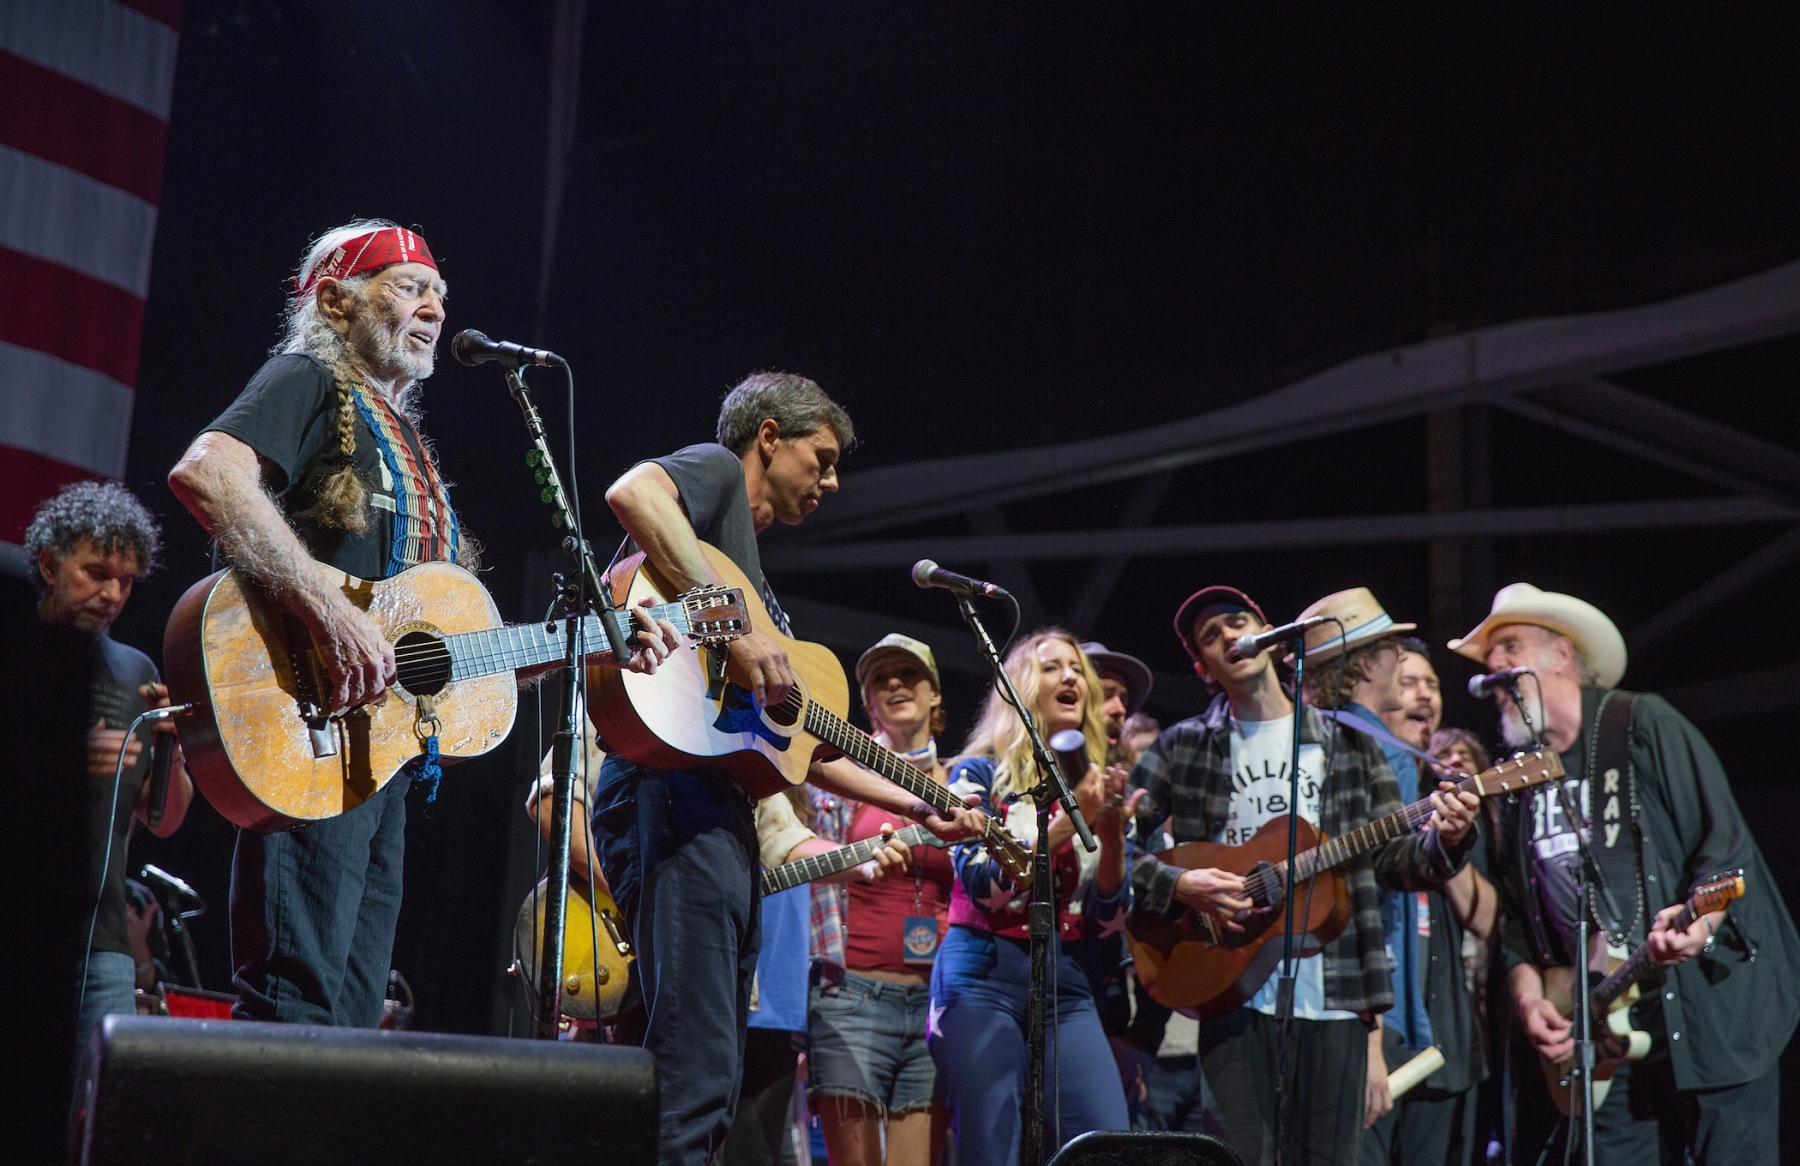 (L-R) Mickey Raphael, Willie Nelson, Beto O'Rourke, Casey Kristofferson, Margo Price, Micah Nelson, and Ray Benson perform onstage with Willie Nelson and Family during the 45th Annual Willie Nelson 4th of July Picnic at Austin360 Amphitheater on July 4, 2018 in Austin, Texas.  (Photo by Rick Kern/WireImage)